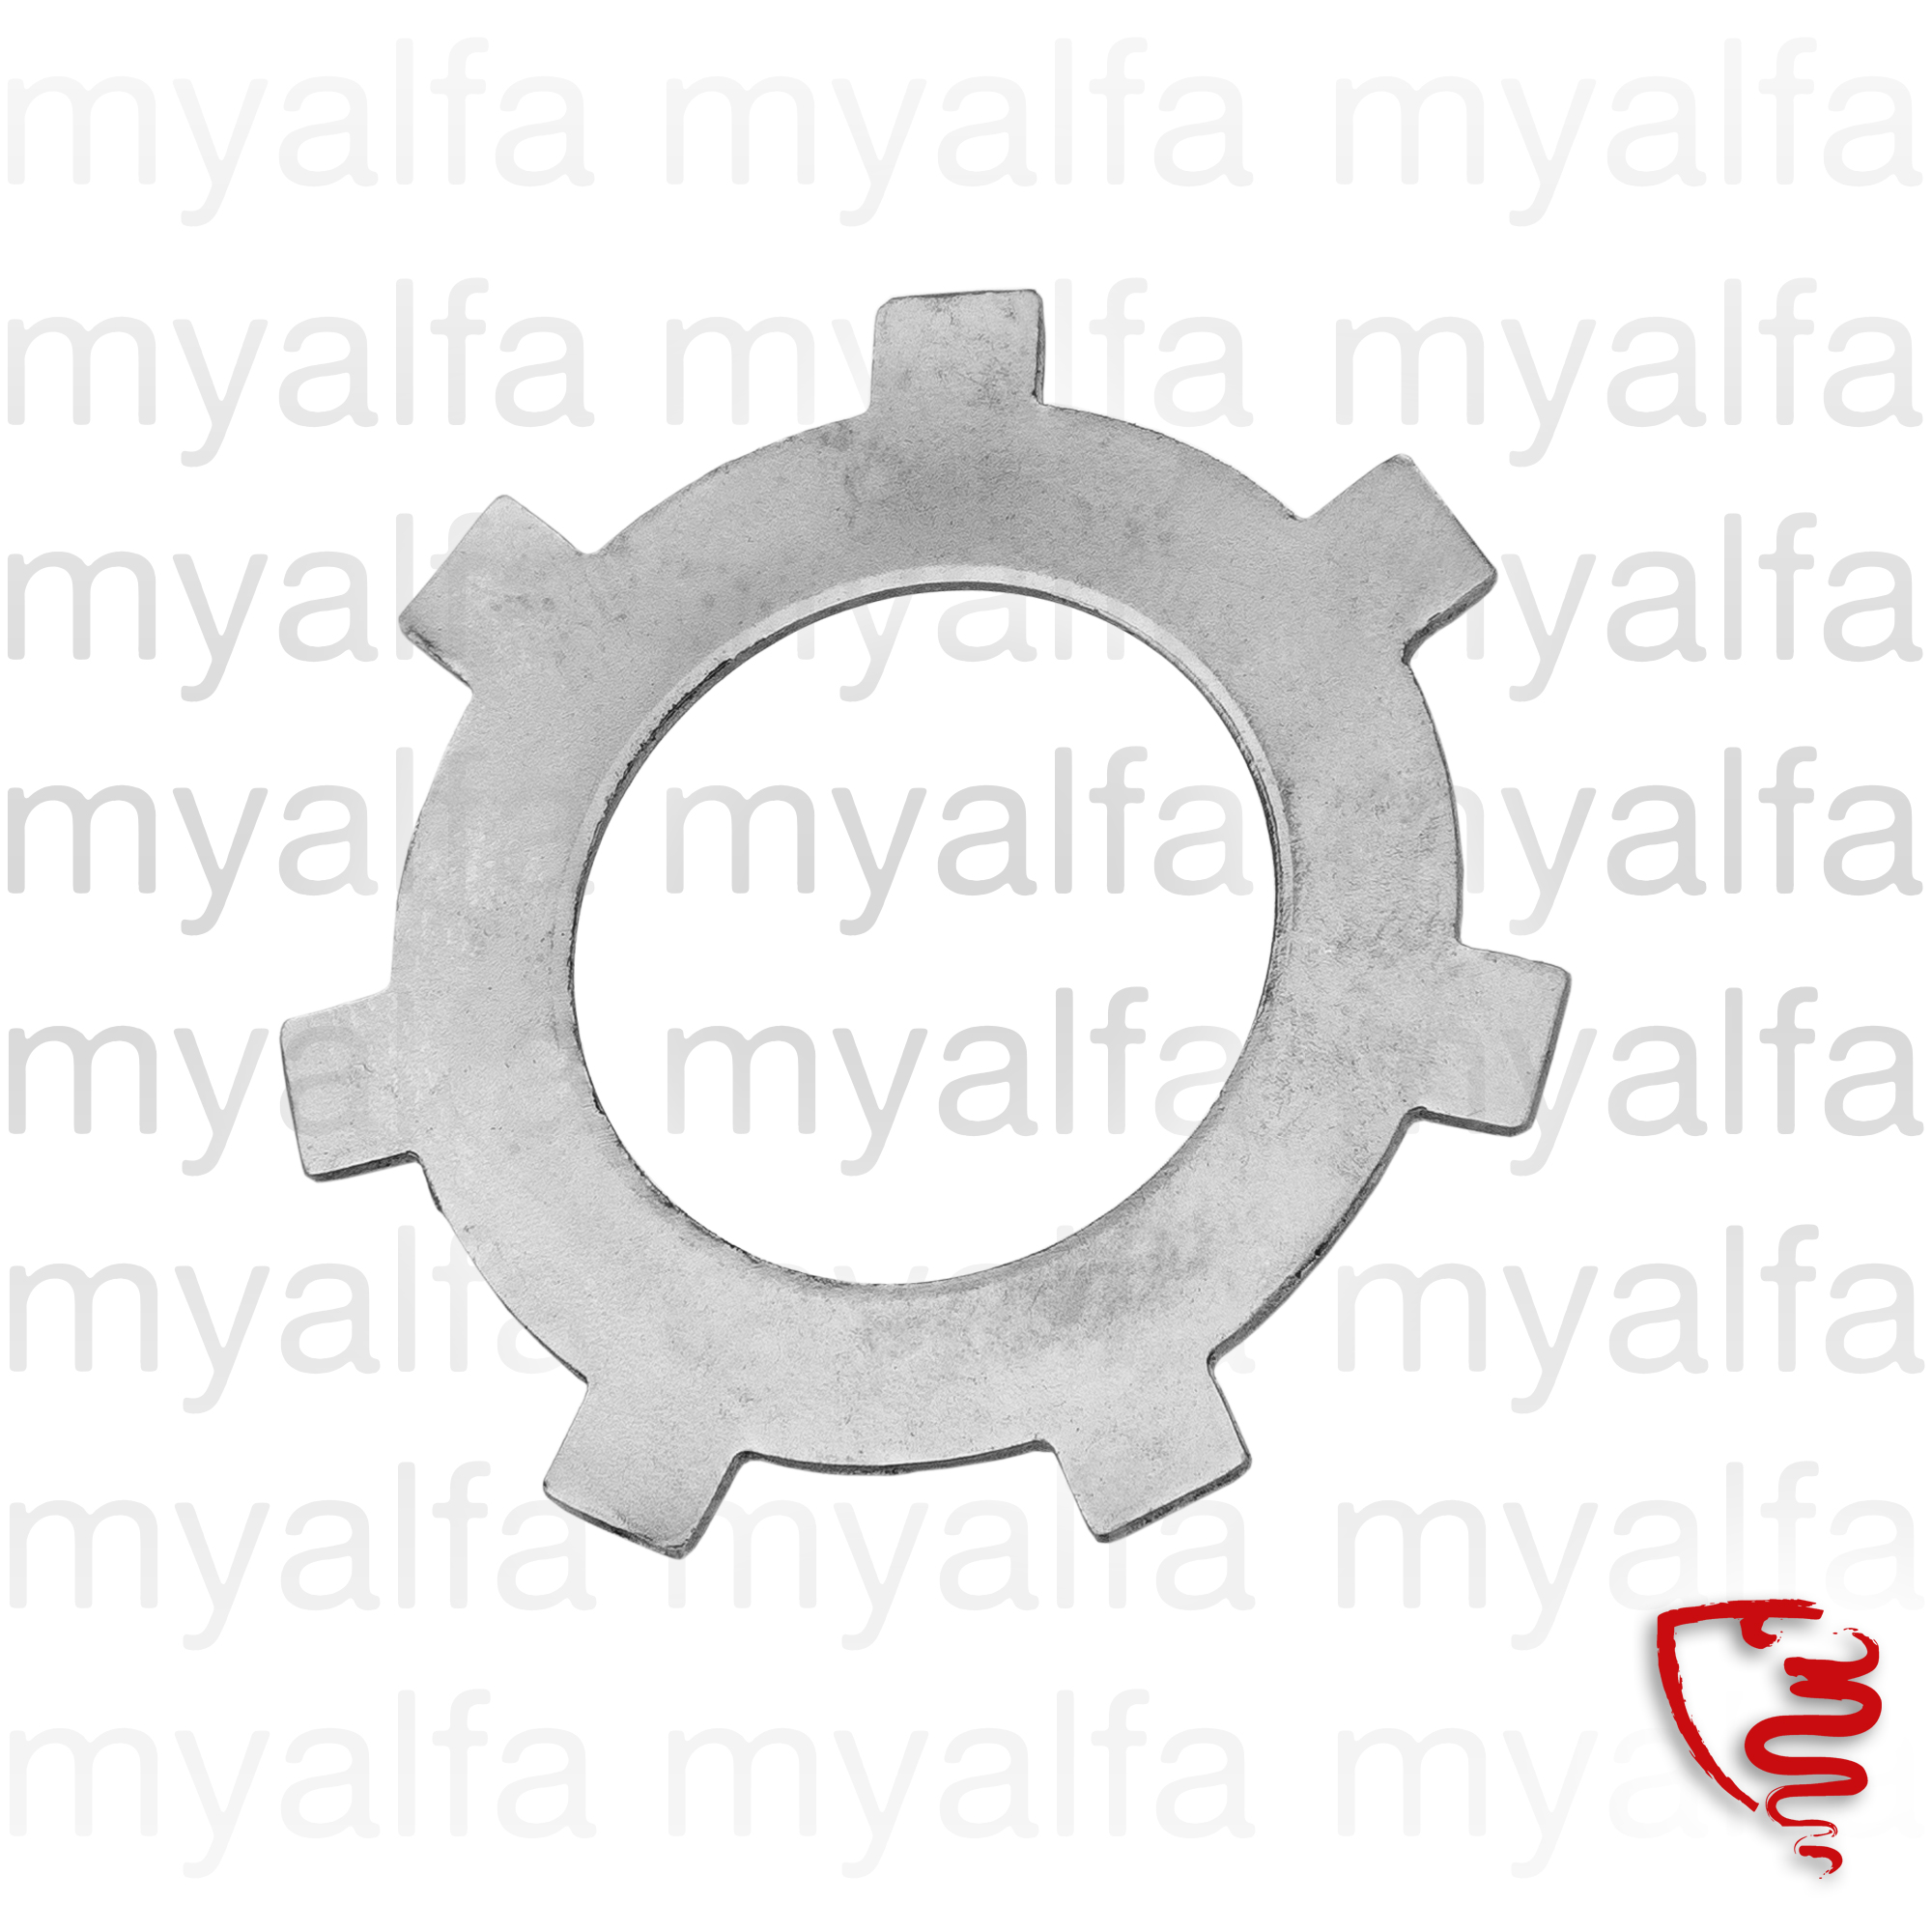 Differential brake 1300-1750 for 105/115, Differential, Mounting Parts